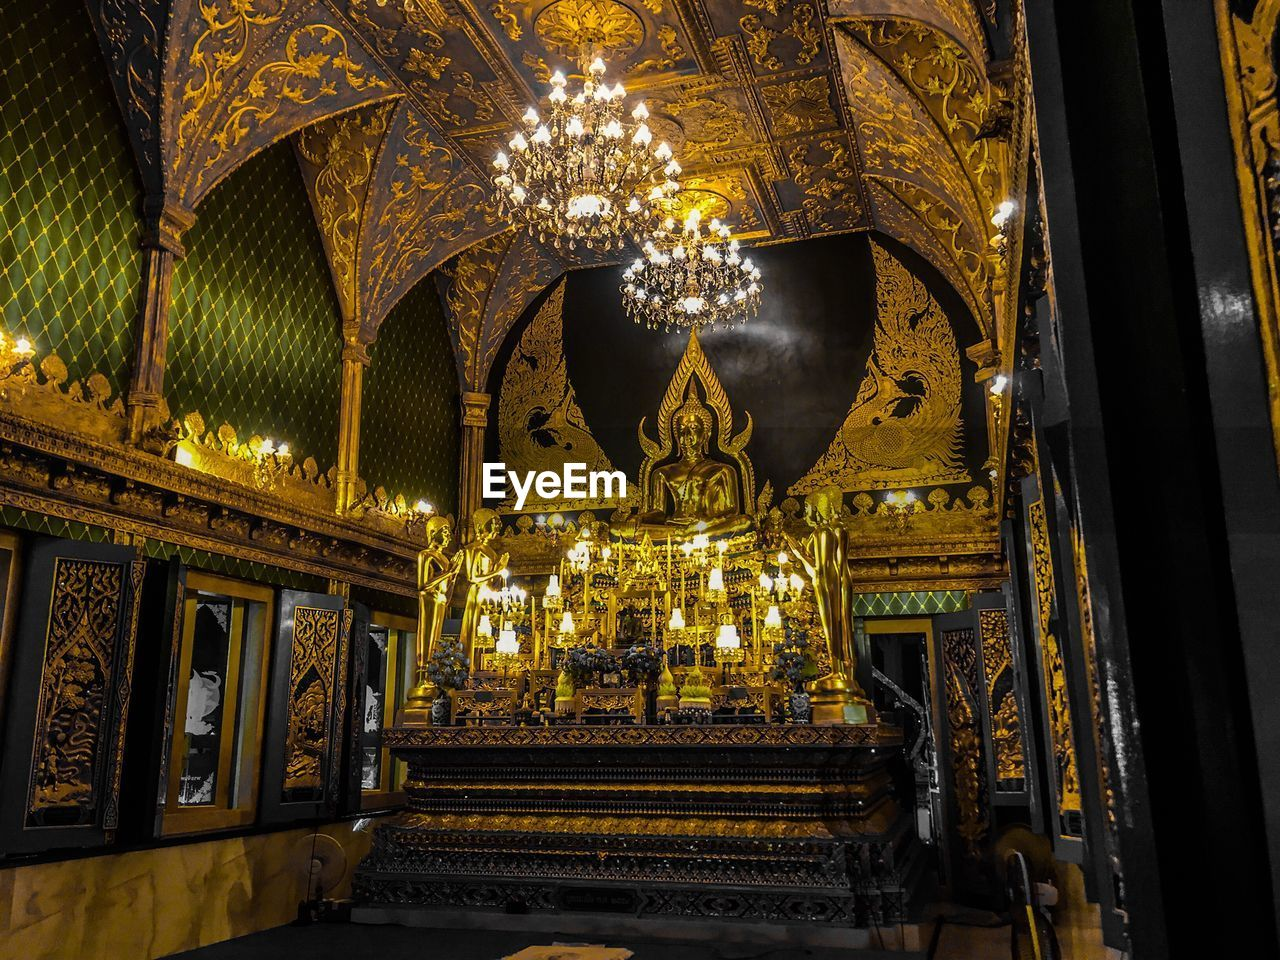 architecture, indoors, built structure, belief, building, place of worship, religion, spirituality, illuminated, lighting equipment, no people, gold colored, low angle view, chandelier, art and craft, ornate, representation, the past, ceiling, architectural column, altar